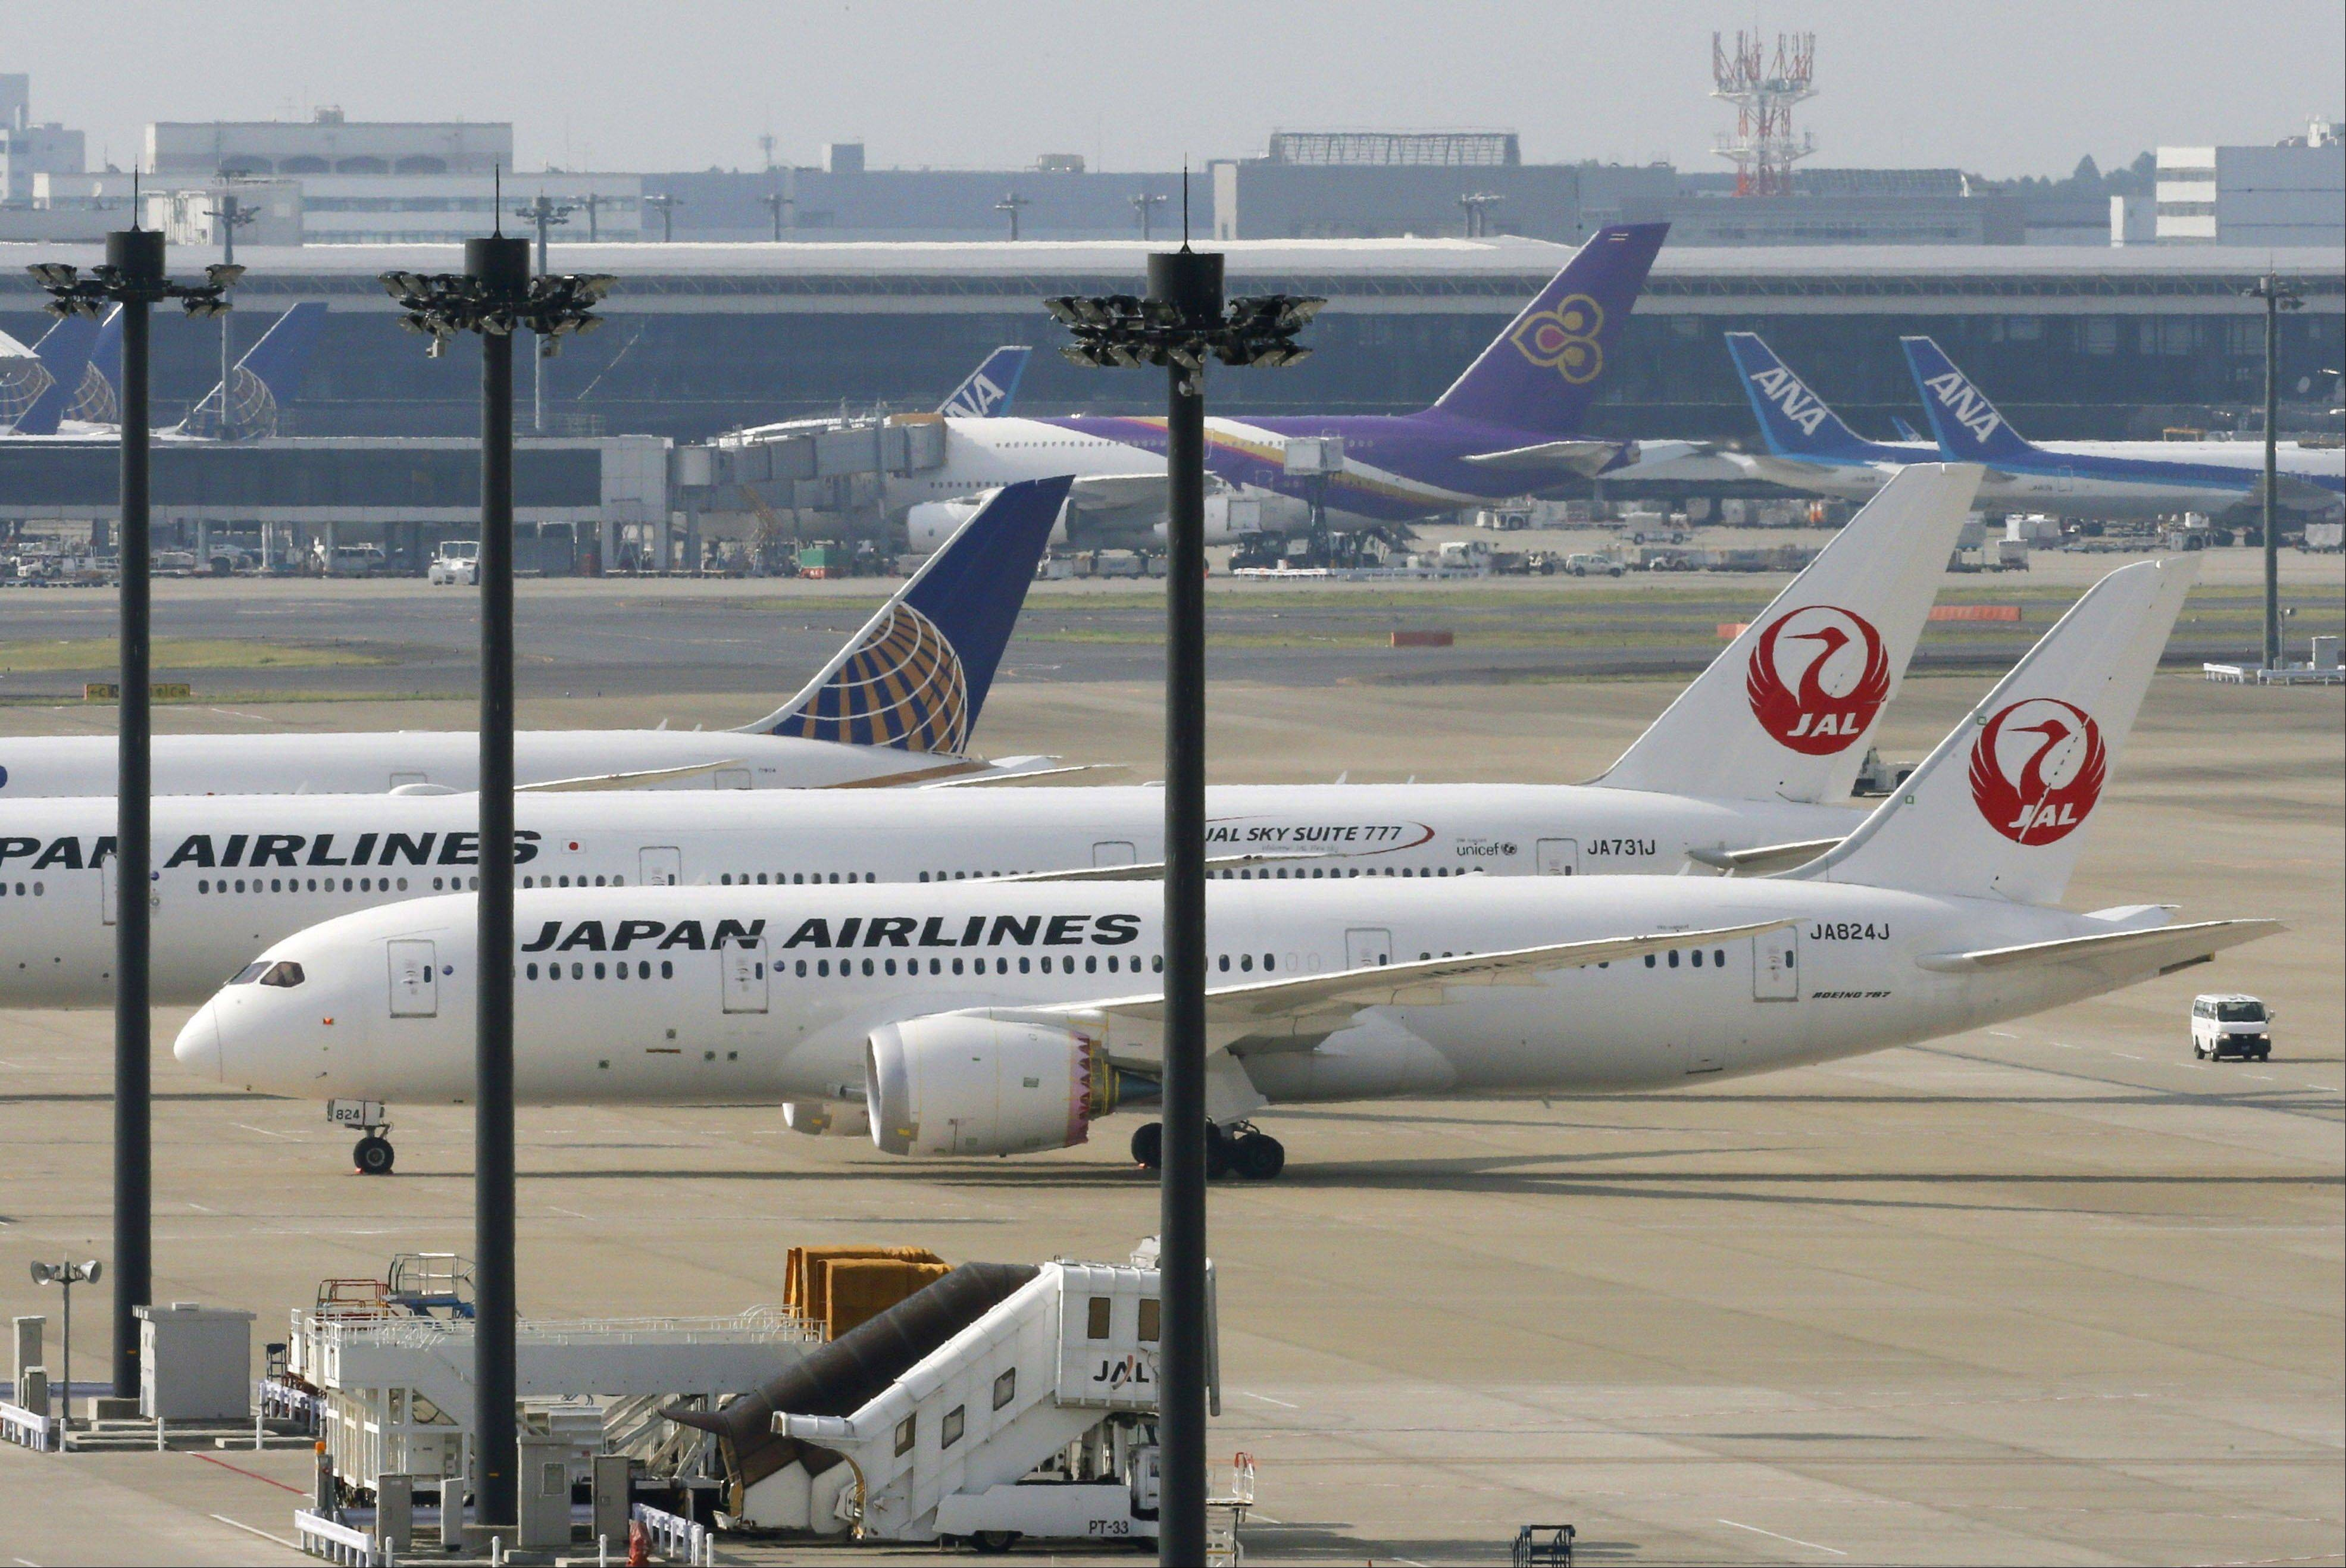 A sensor problem was found Sunday in one of the exchanged batteries for a JAL Boeing 787 jet due to bound for Beijing from Haneda but did not pose a safety risk, a Japanese broadcaster reported.